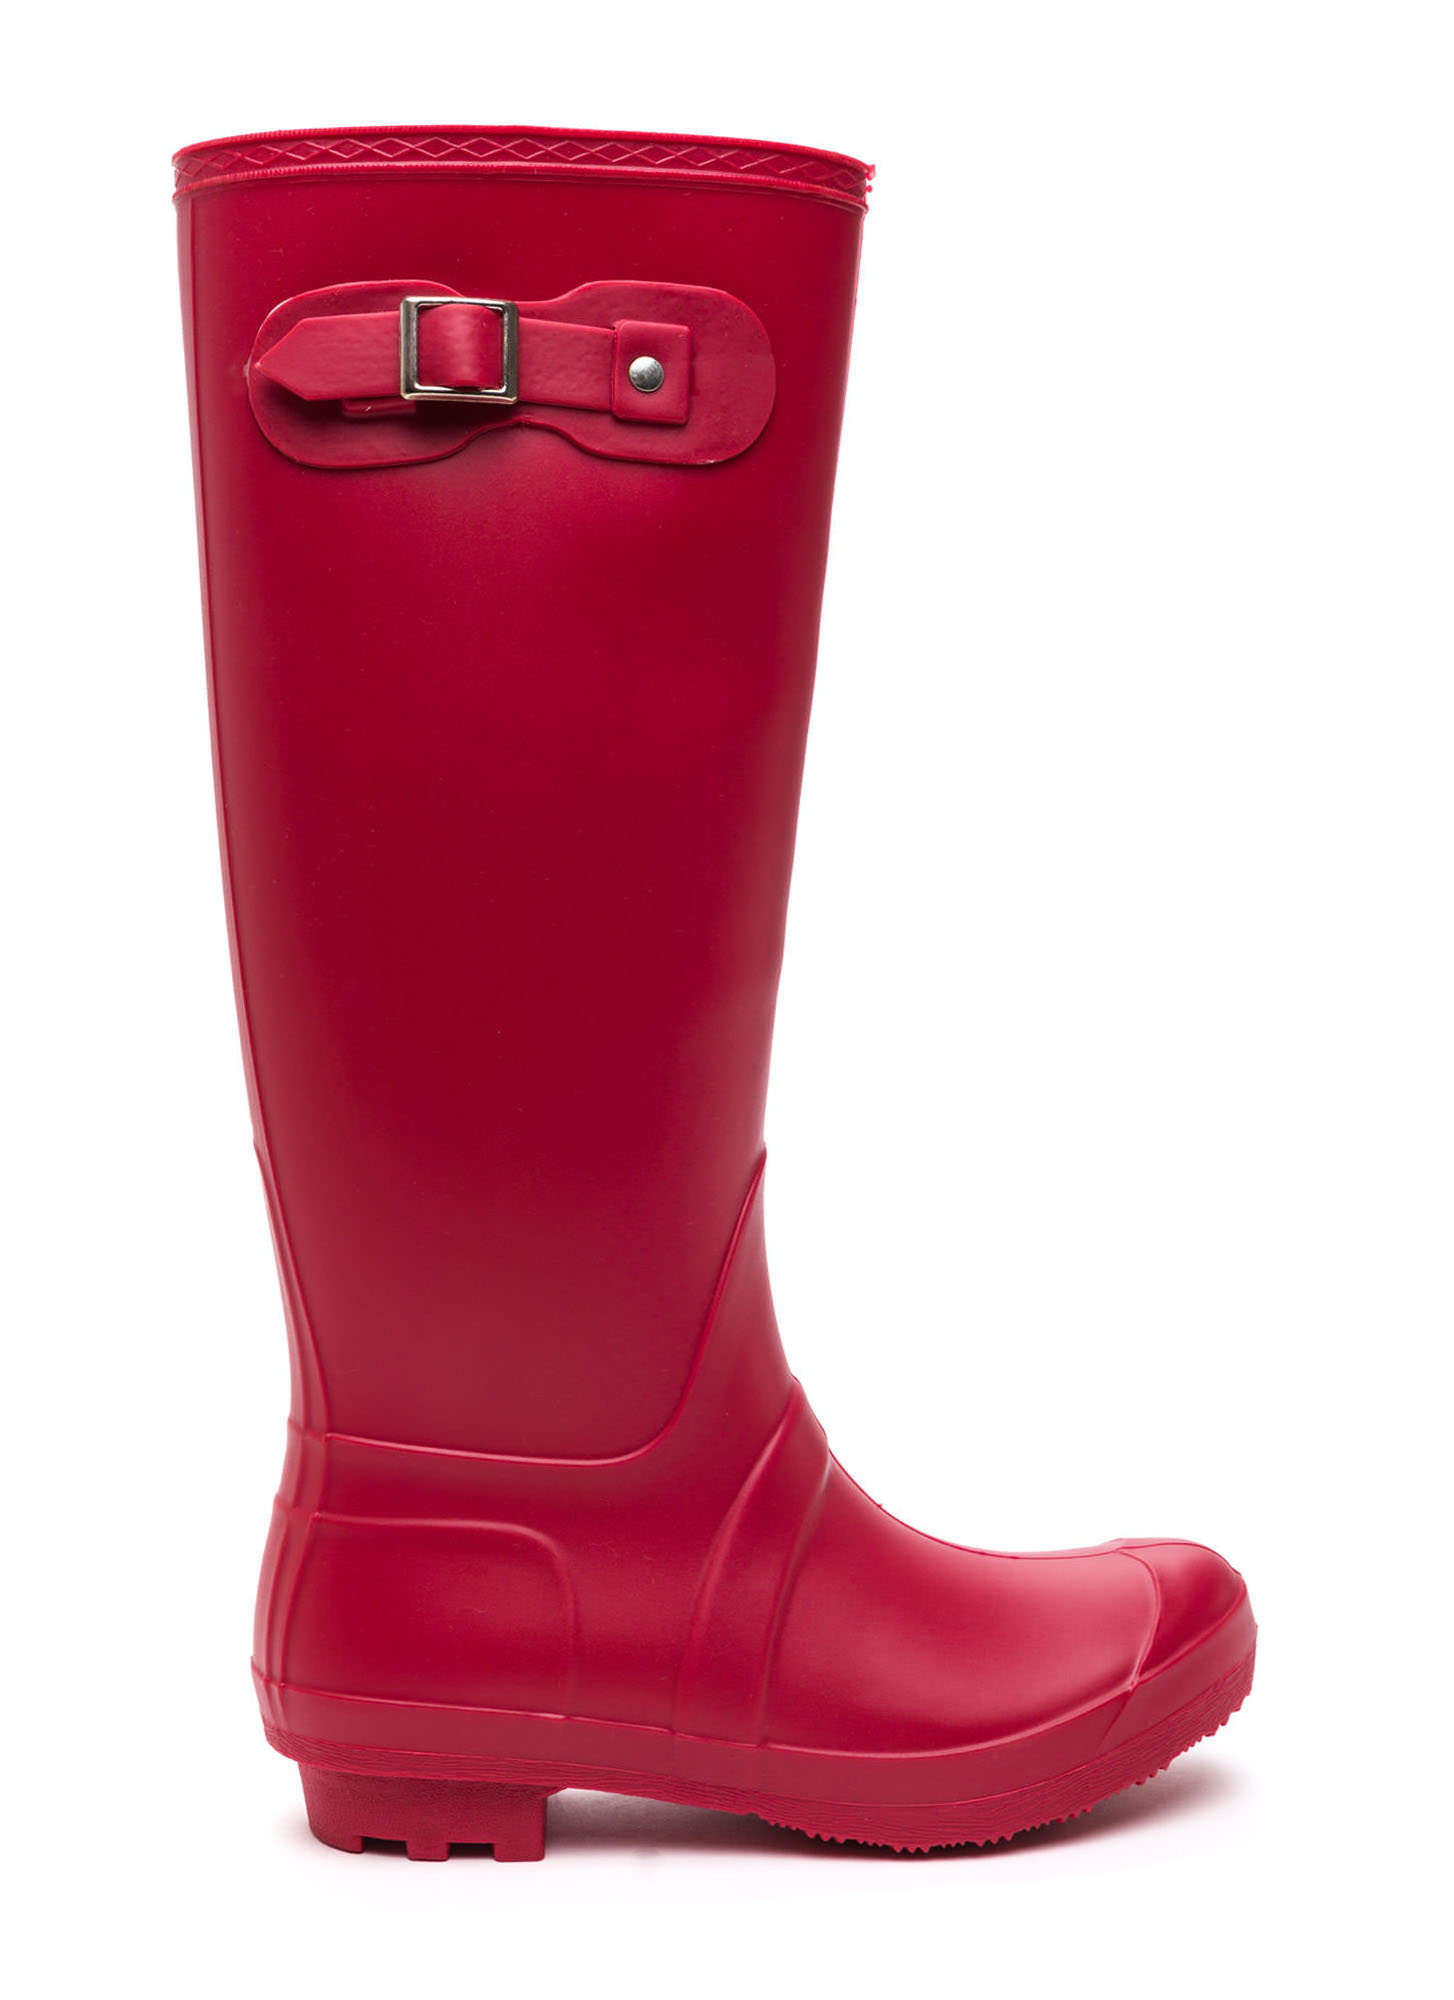 Storm Away Rain Boots RED